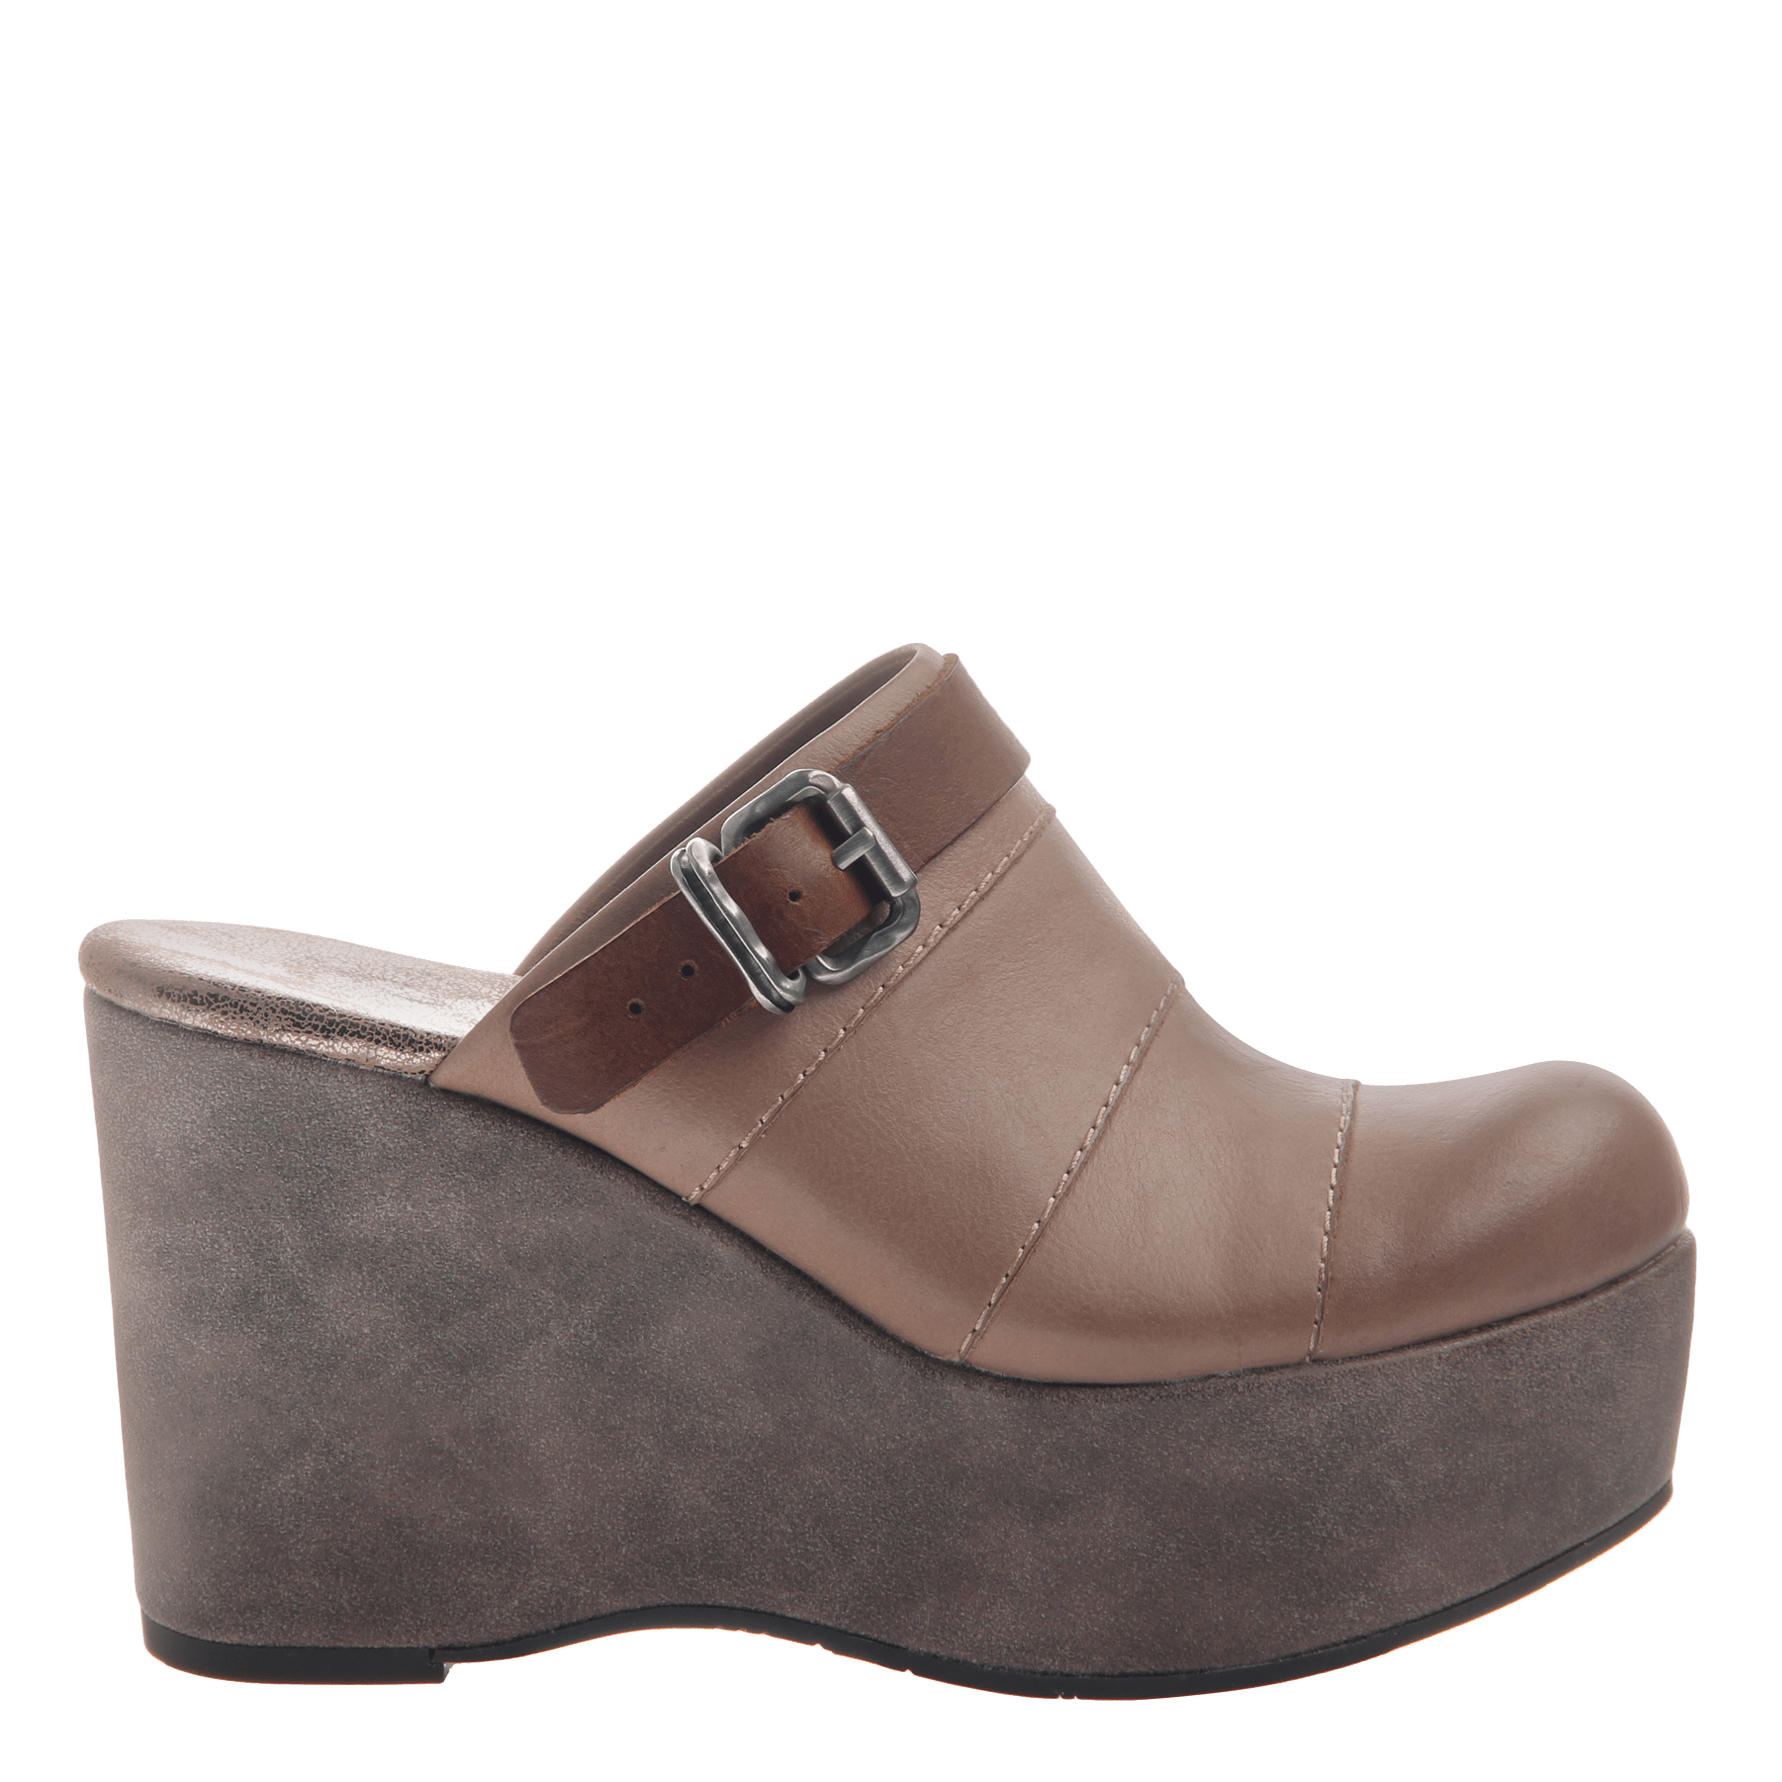 0a50c11329a Womens platform wedge Journey in Pecan side view